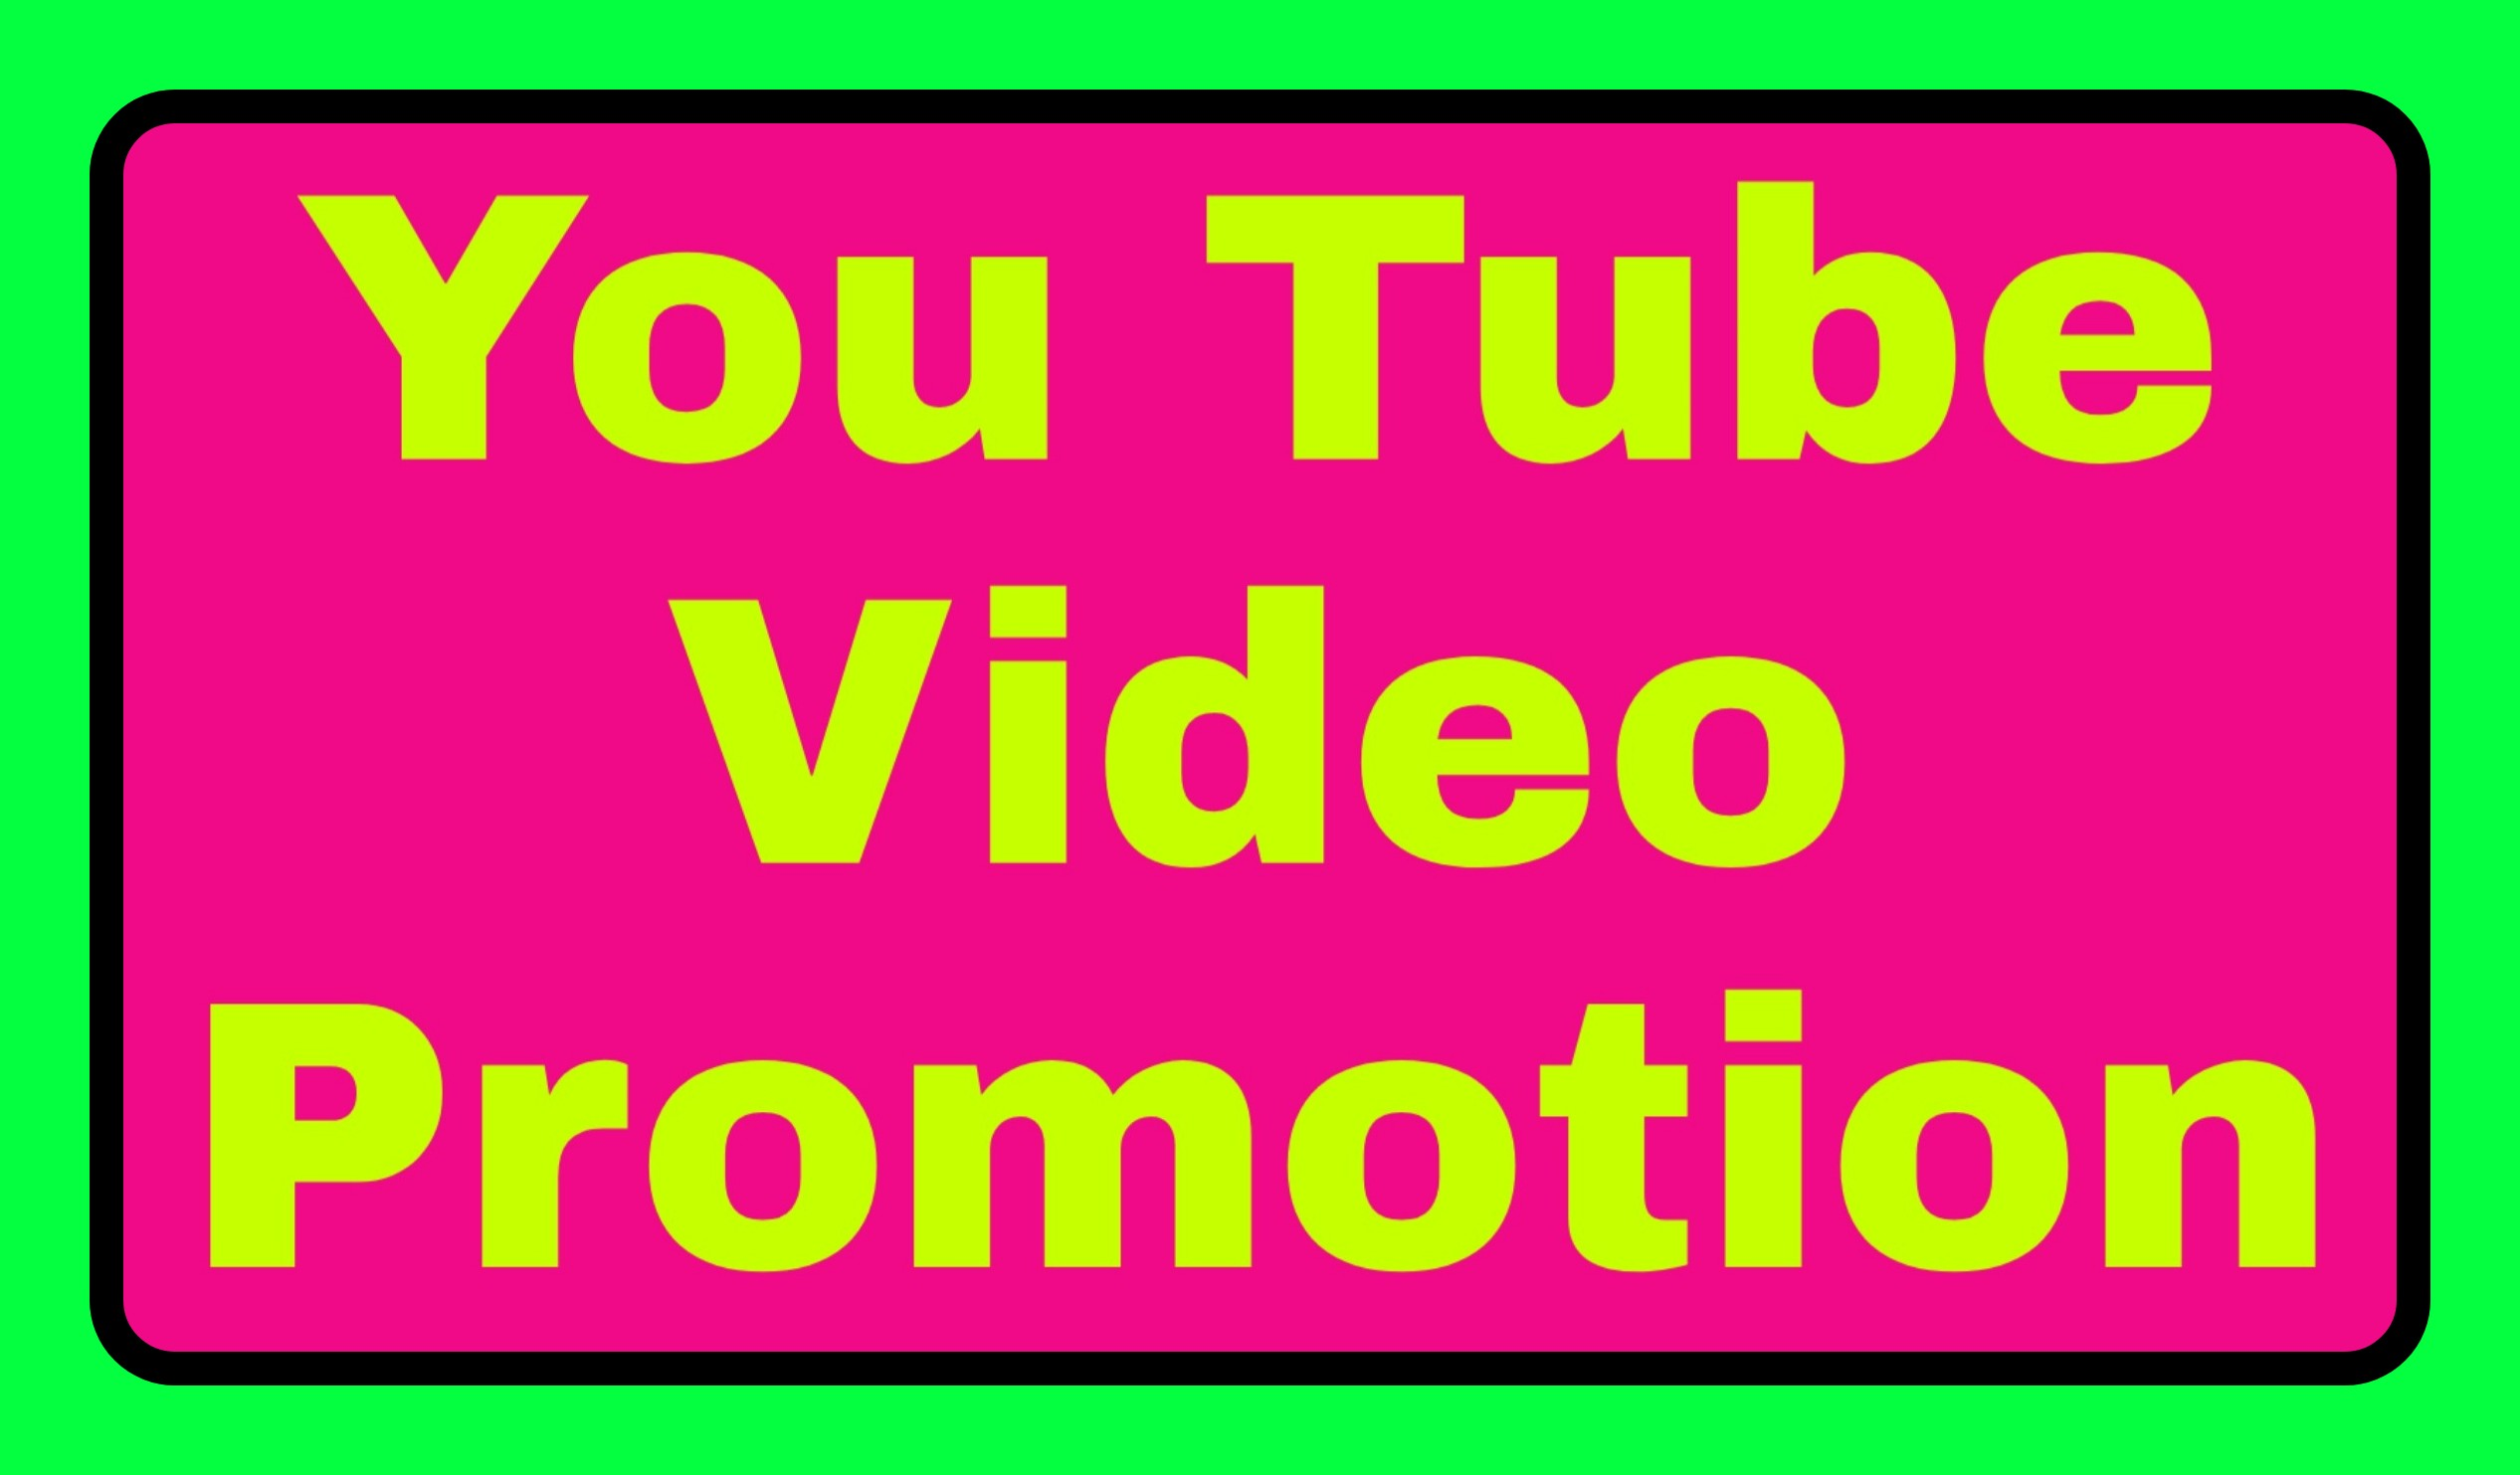 High Quality Video Promotion Marketing Instant Start & Fast Delivery